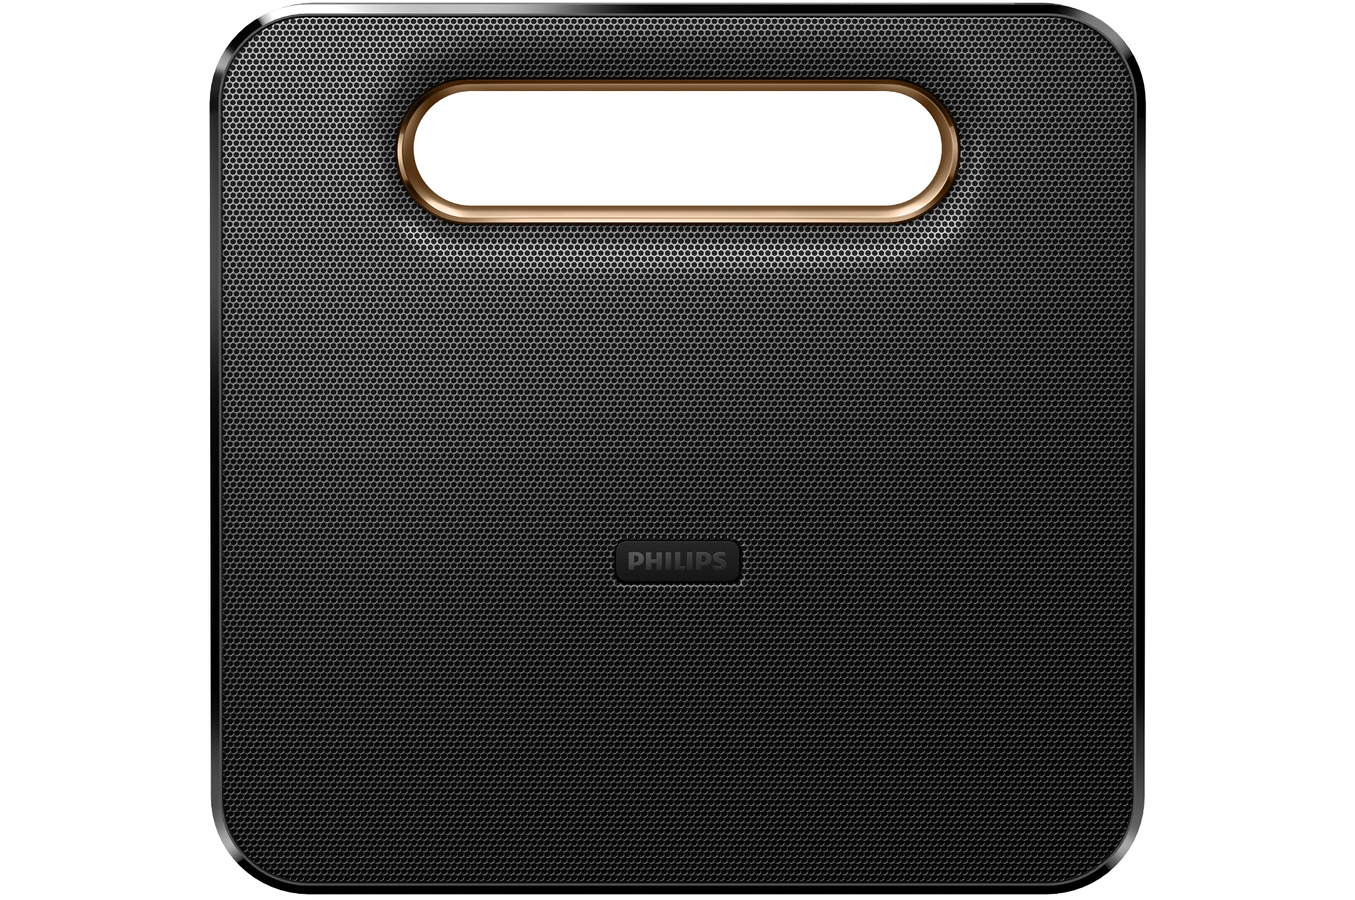 enceinte bluetooth sans fil philips bt5880b 12. Black Bedroom Furniture Sets. Home Design Ideas